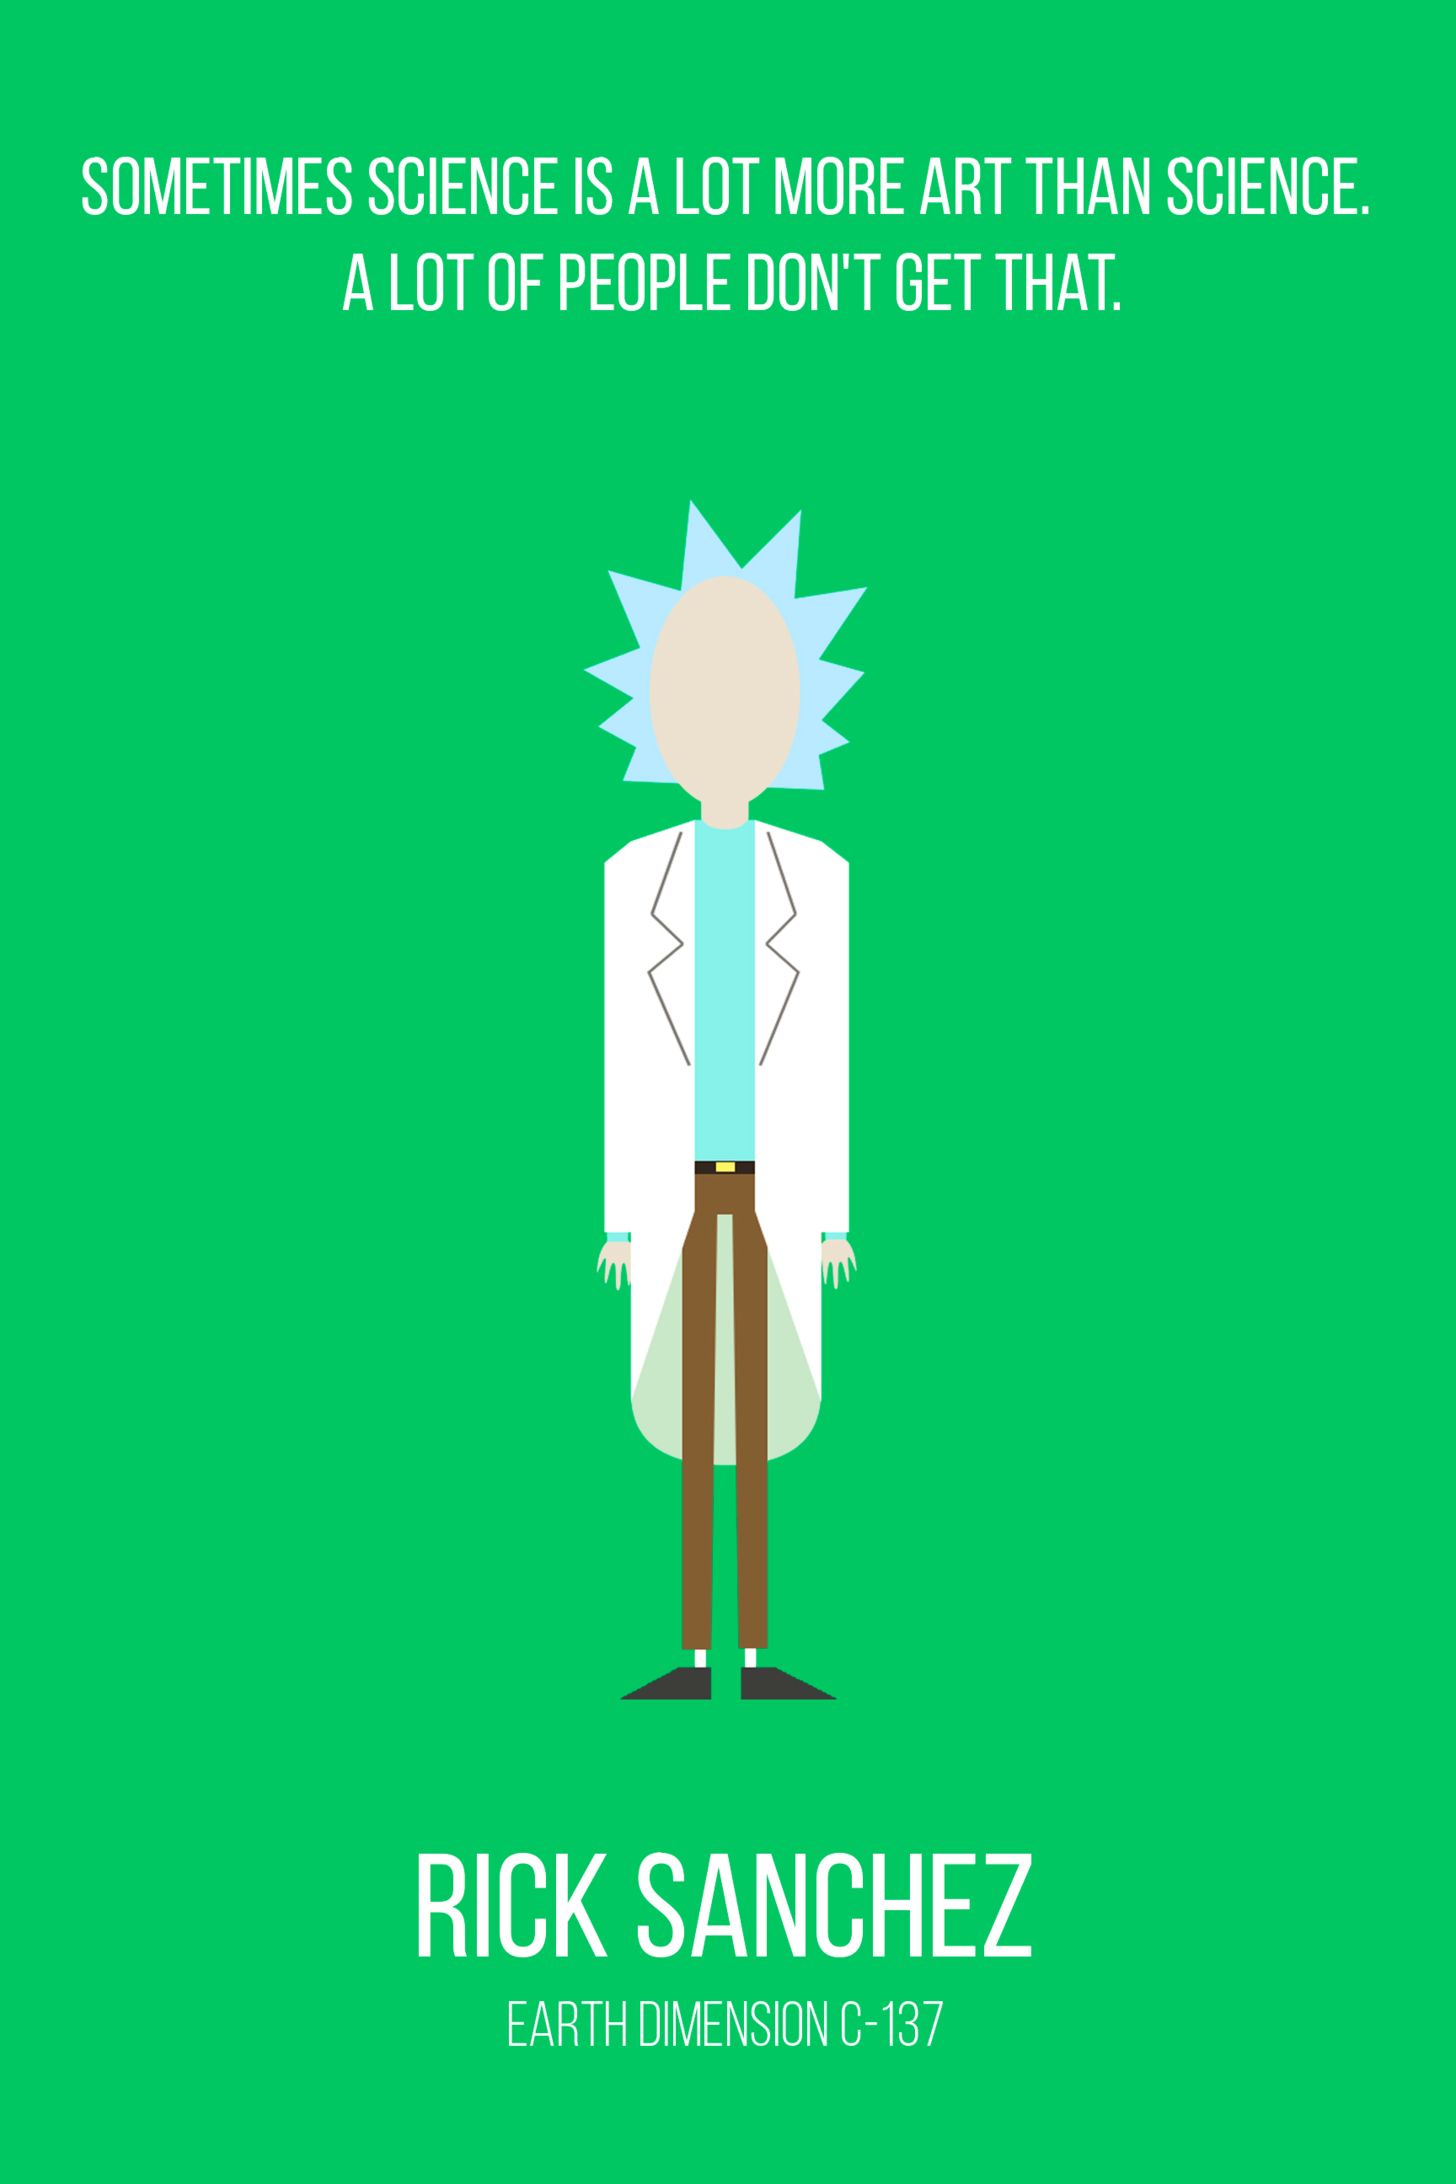 Rick And Morty Quotes Just some Rick and Morty quotes. | scifi/fantasy/general geekiness  Rick And Morty Quotes